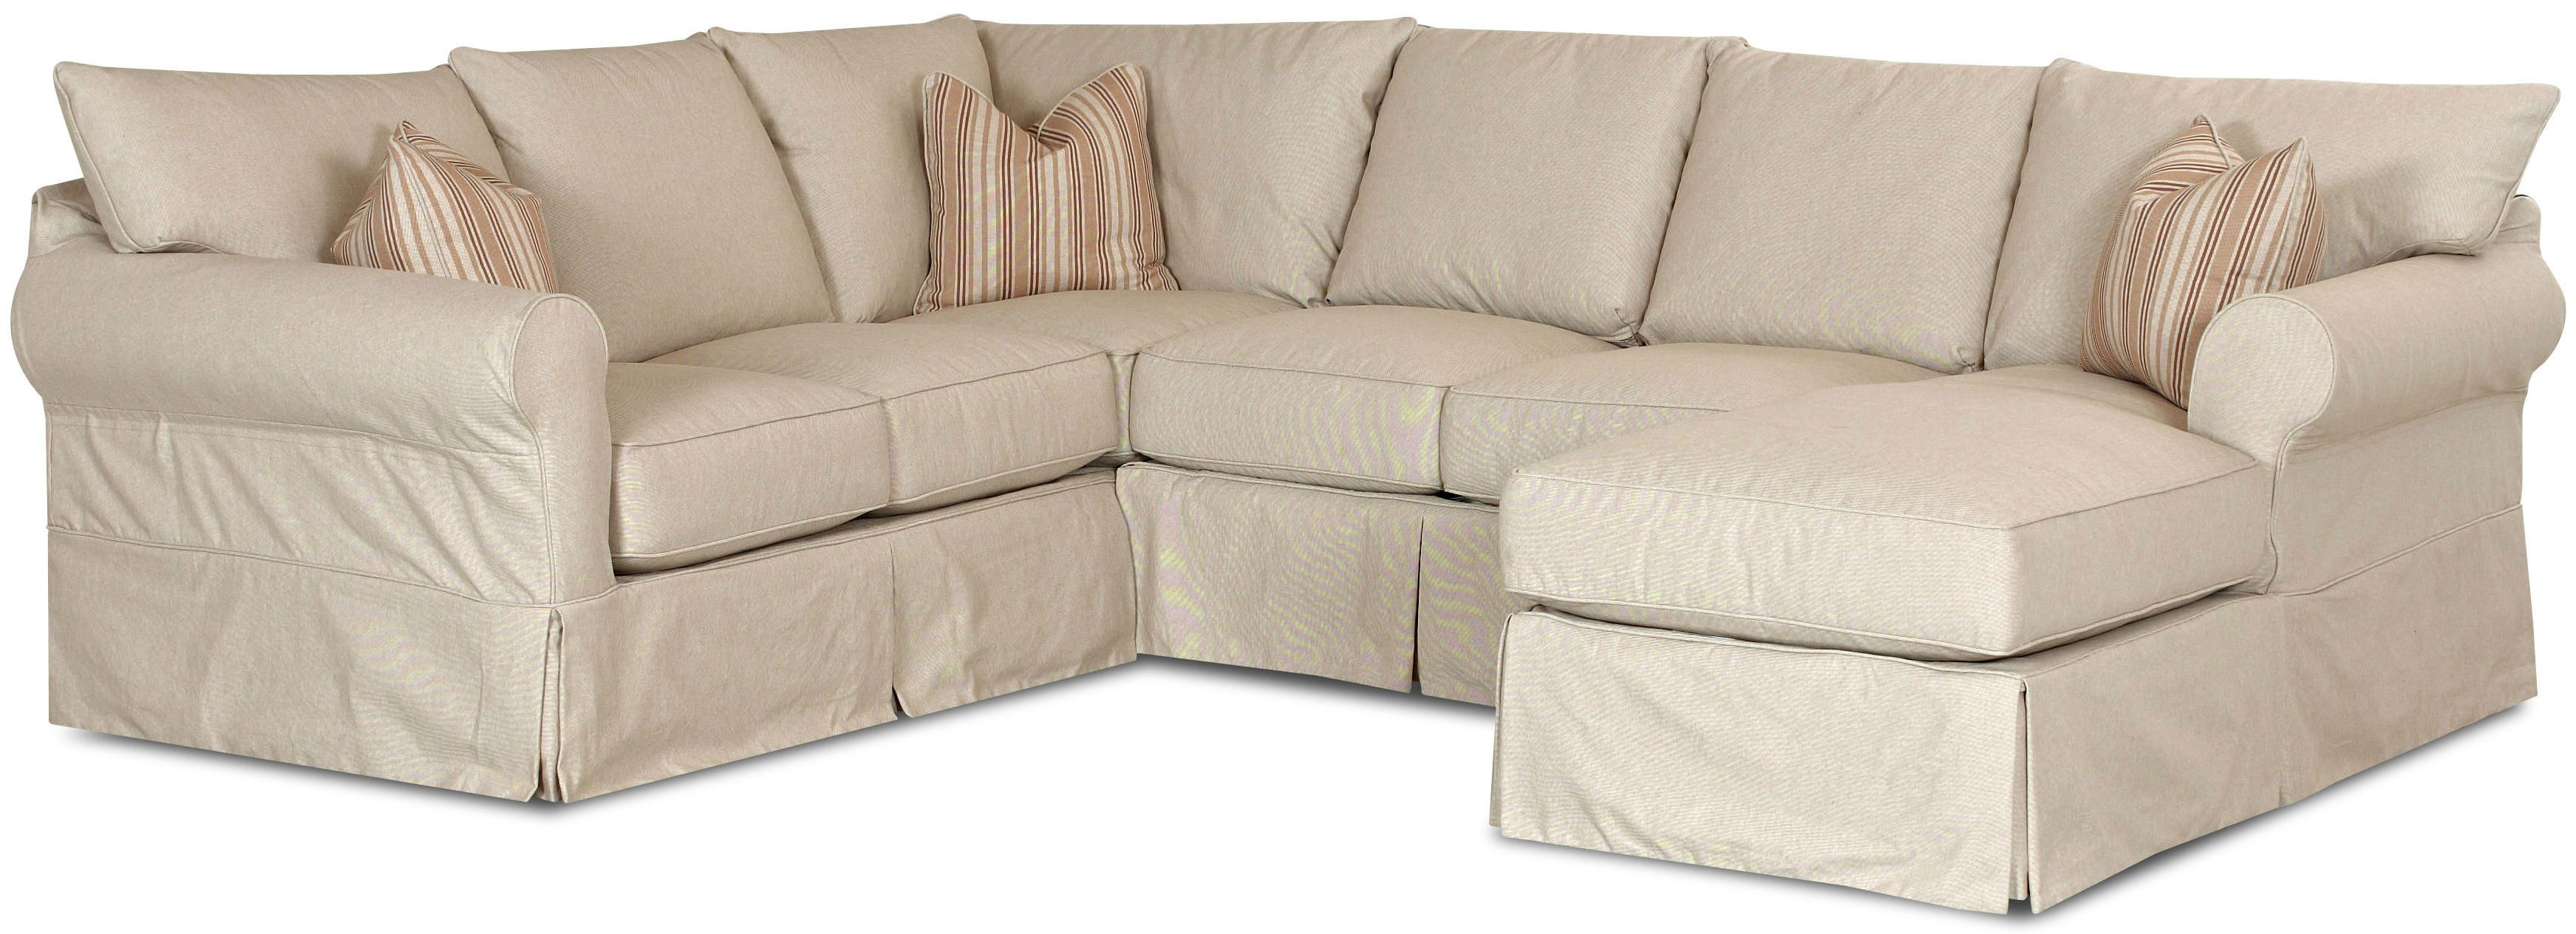 Slip cover sectional sofa with right chaise by klaussner for Chaise couch cover